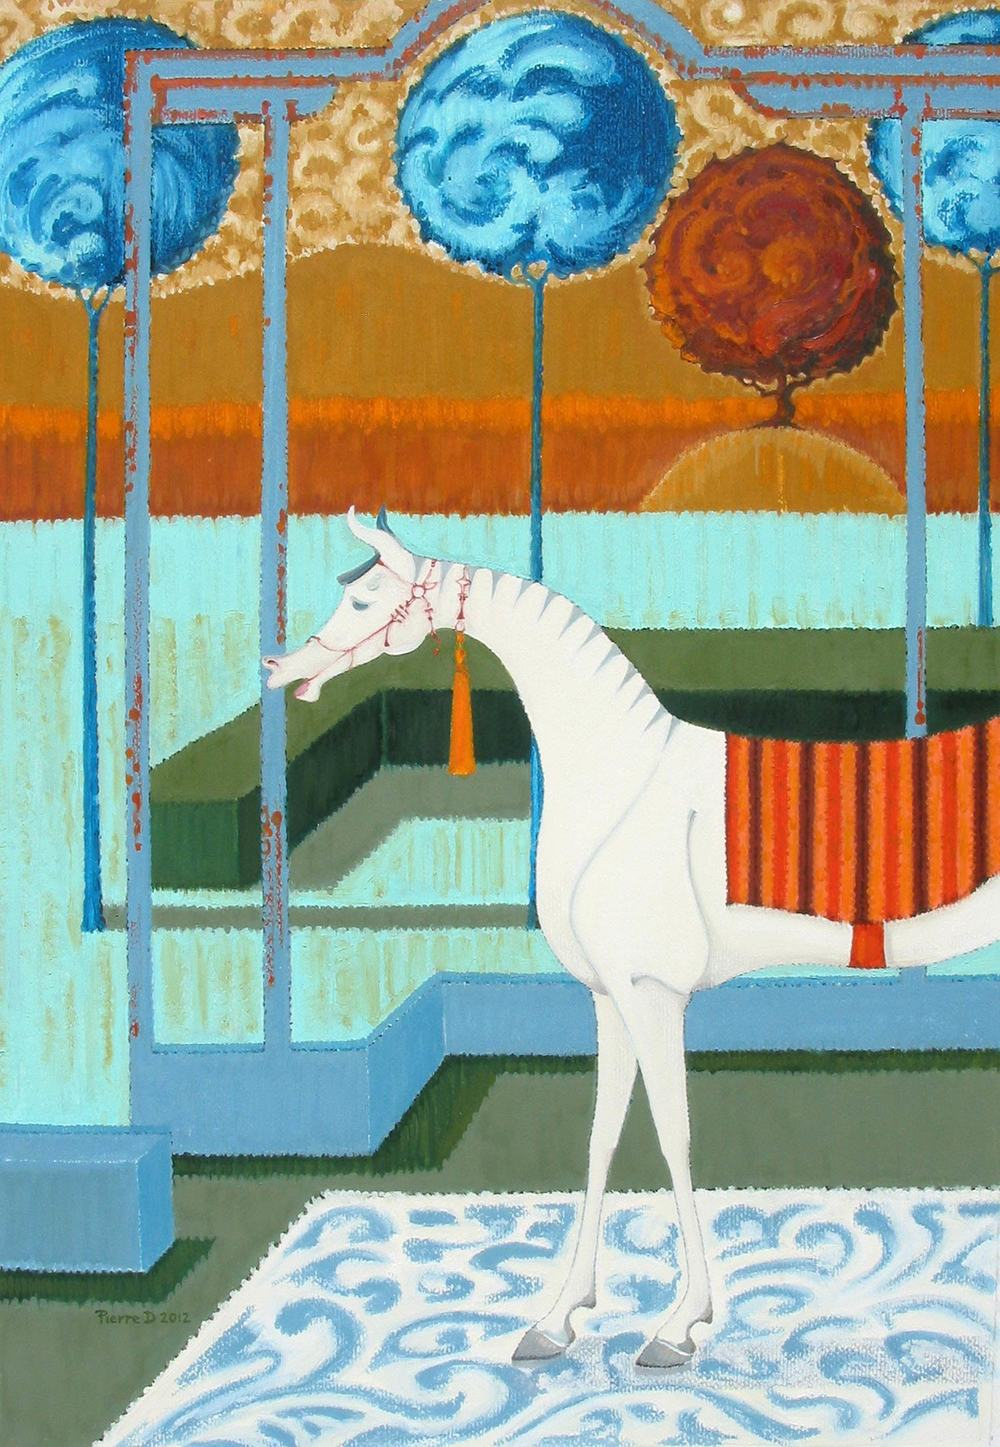 Moghul lV Sultan Stripes   ©  Oil on fine paper  93 cm high x 64 cm wide  As in 'The Three Kings' there is an odd perspective,  with long vertical lines and angled enclosures.  The carpet is placed in an open room so we don't know if we are in or out,  and to disorientate further,  the horse is on the carpet.